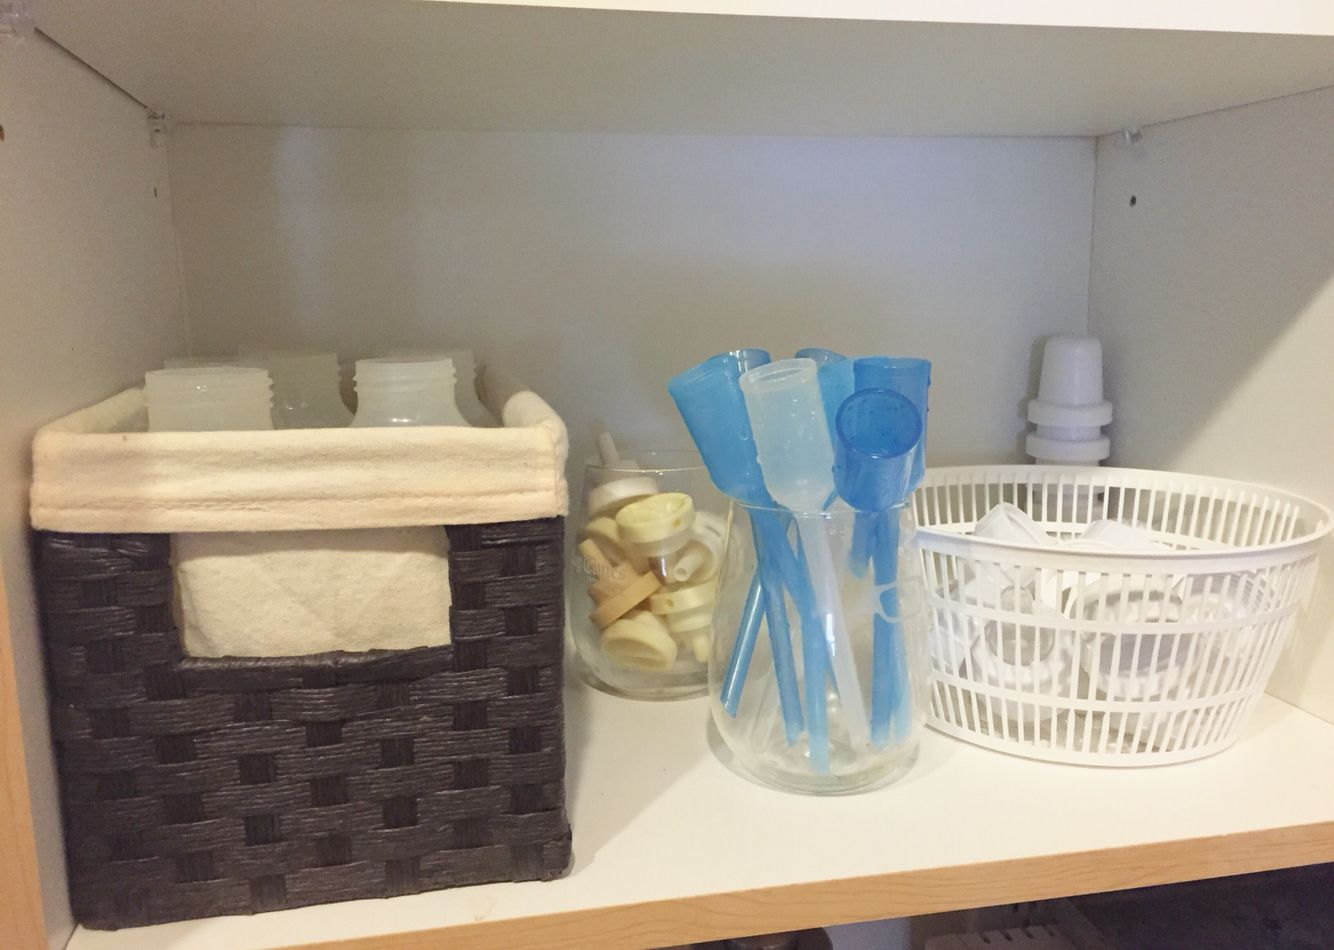 Dr. Brownu0027s bottle storage using stemless wine glasses & Dr. Brownu0027s bottle storage using stemless wine glasses | Pregnancy ...